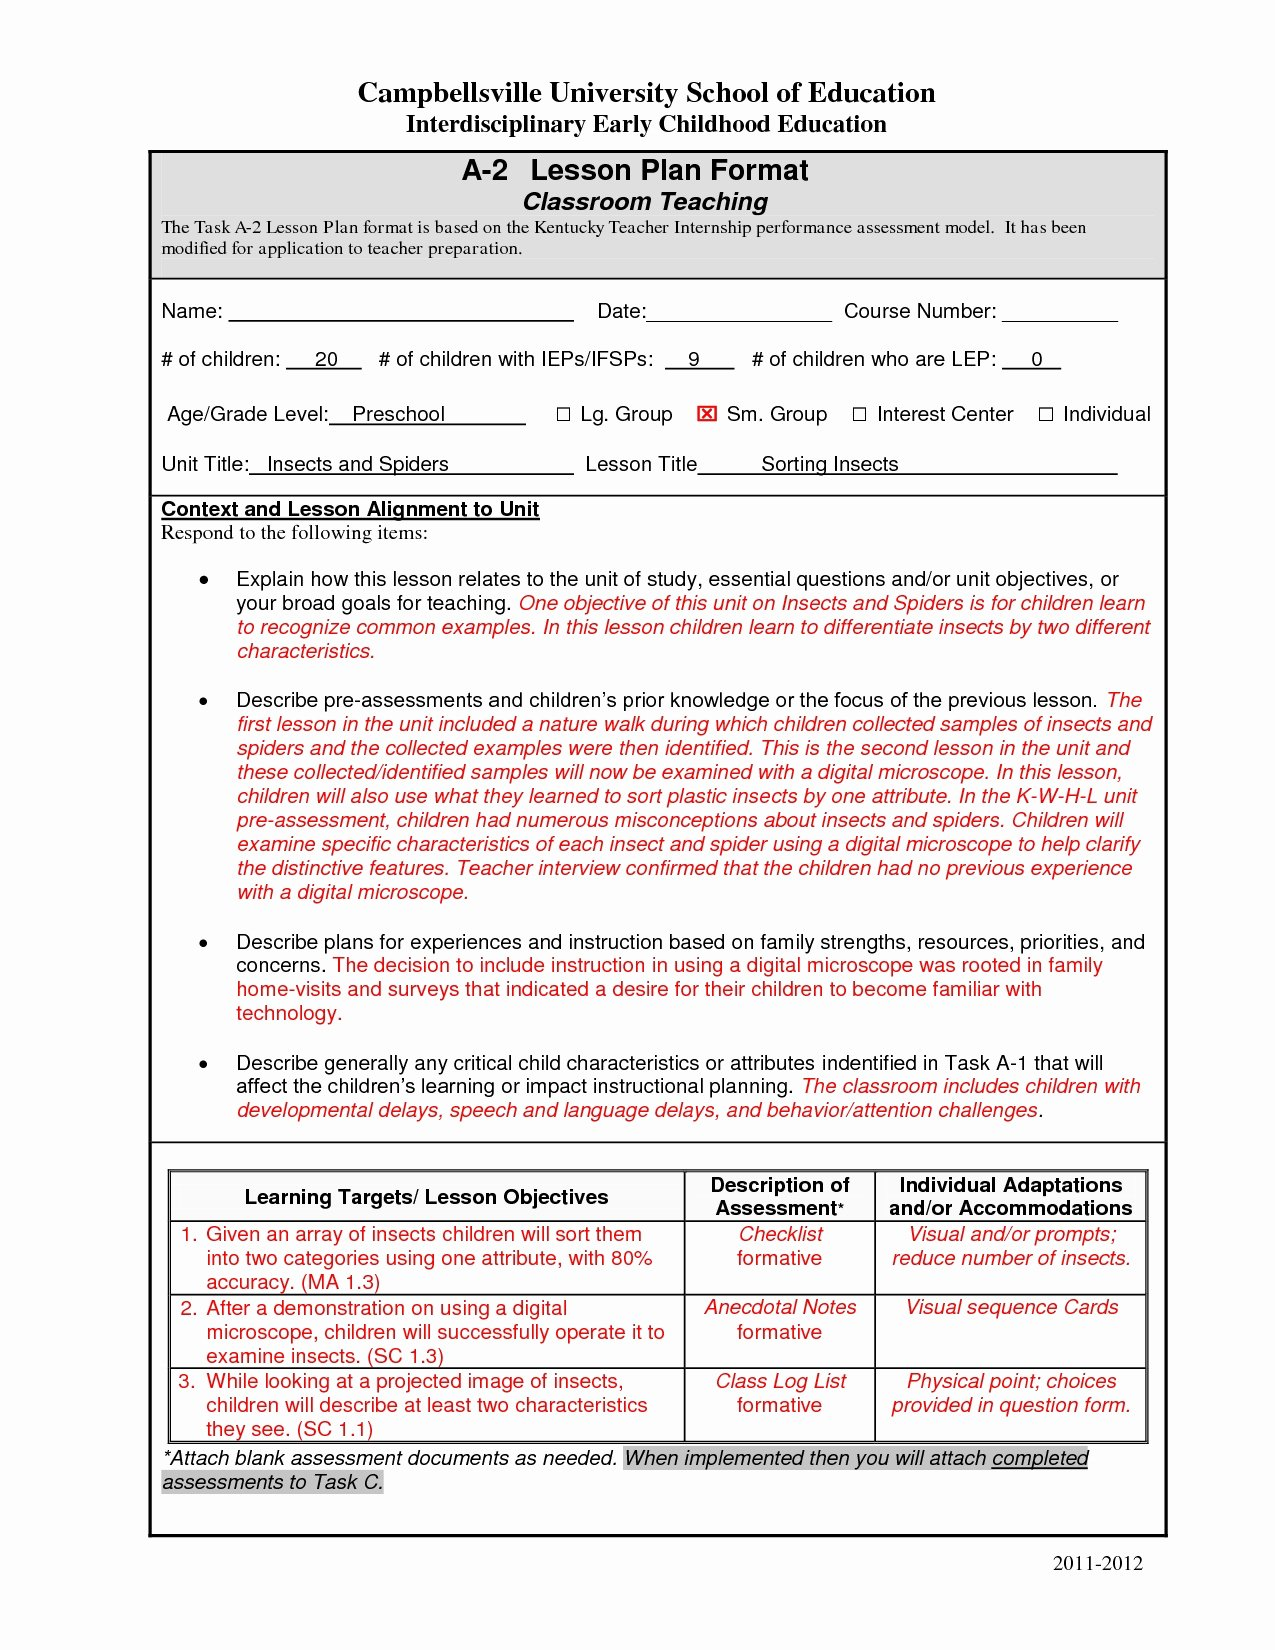 Edtpa Lesson Plan Template Best Of Art Lesson Plans Template